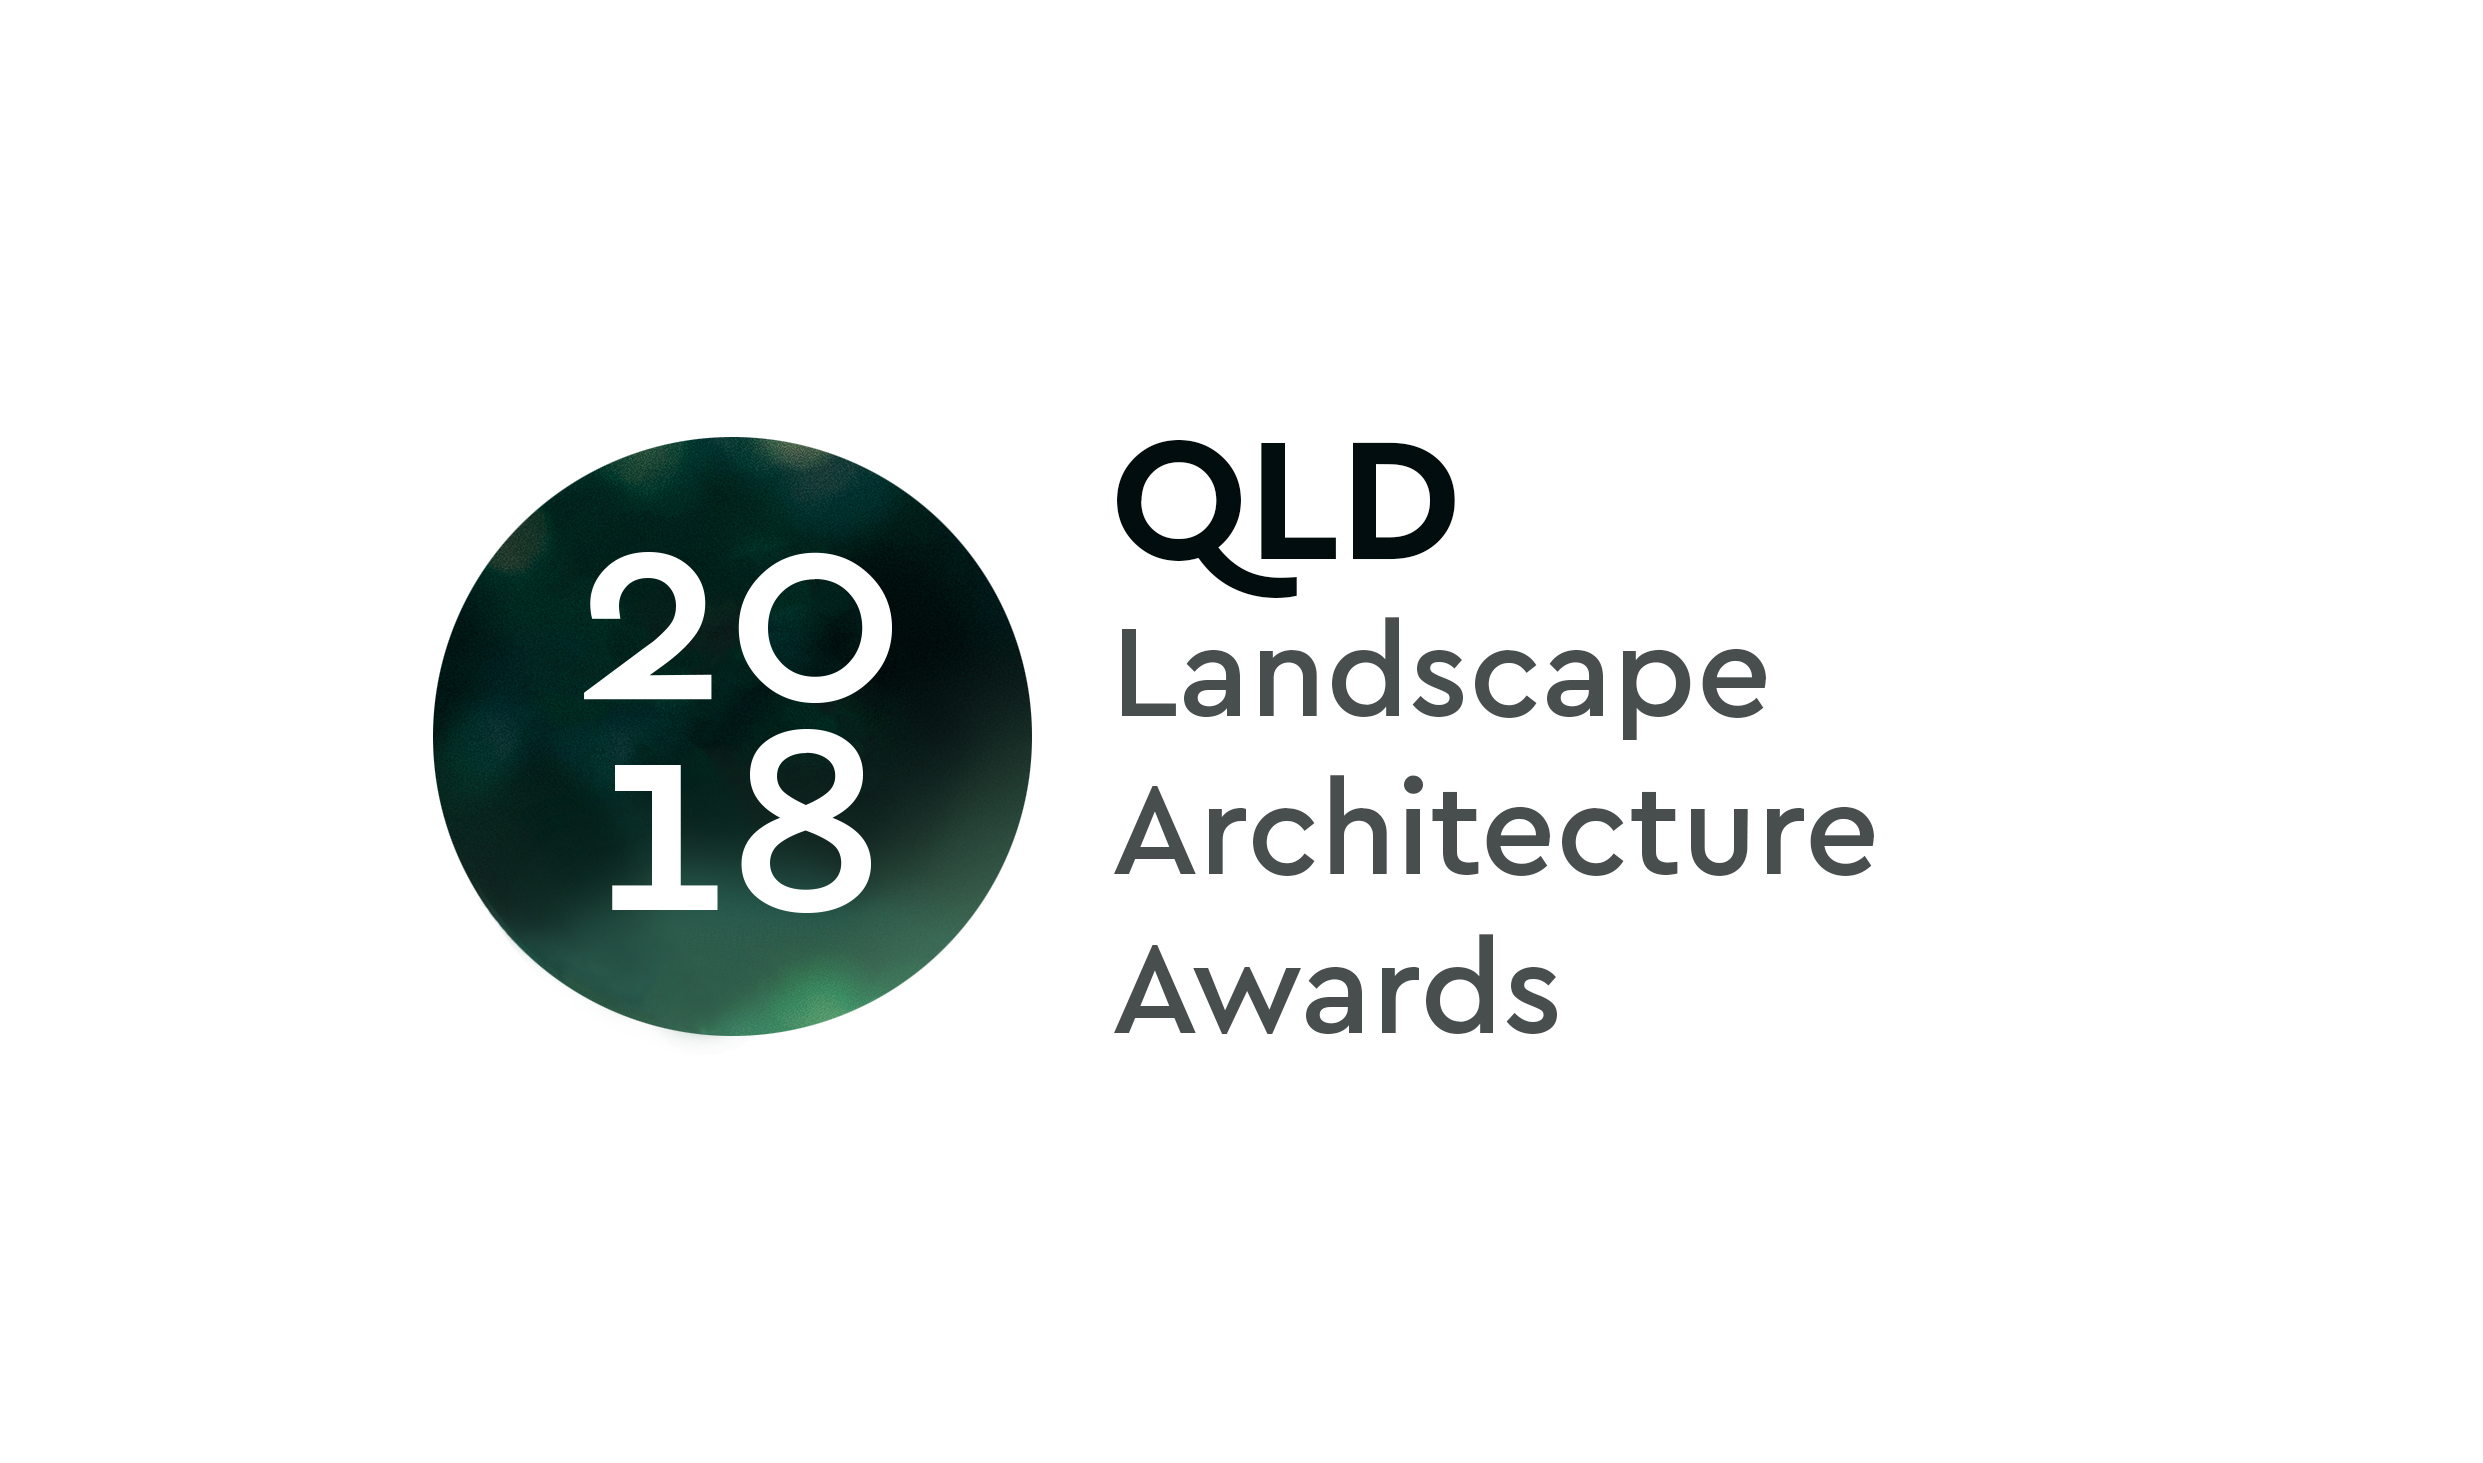 QLD 2018 Landscape Architecture Awards Dinner